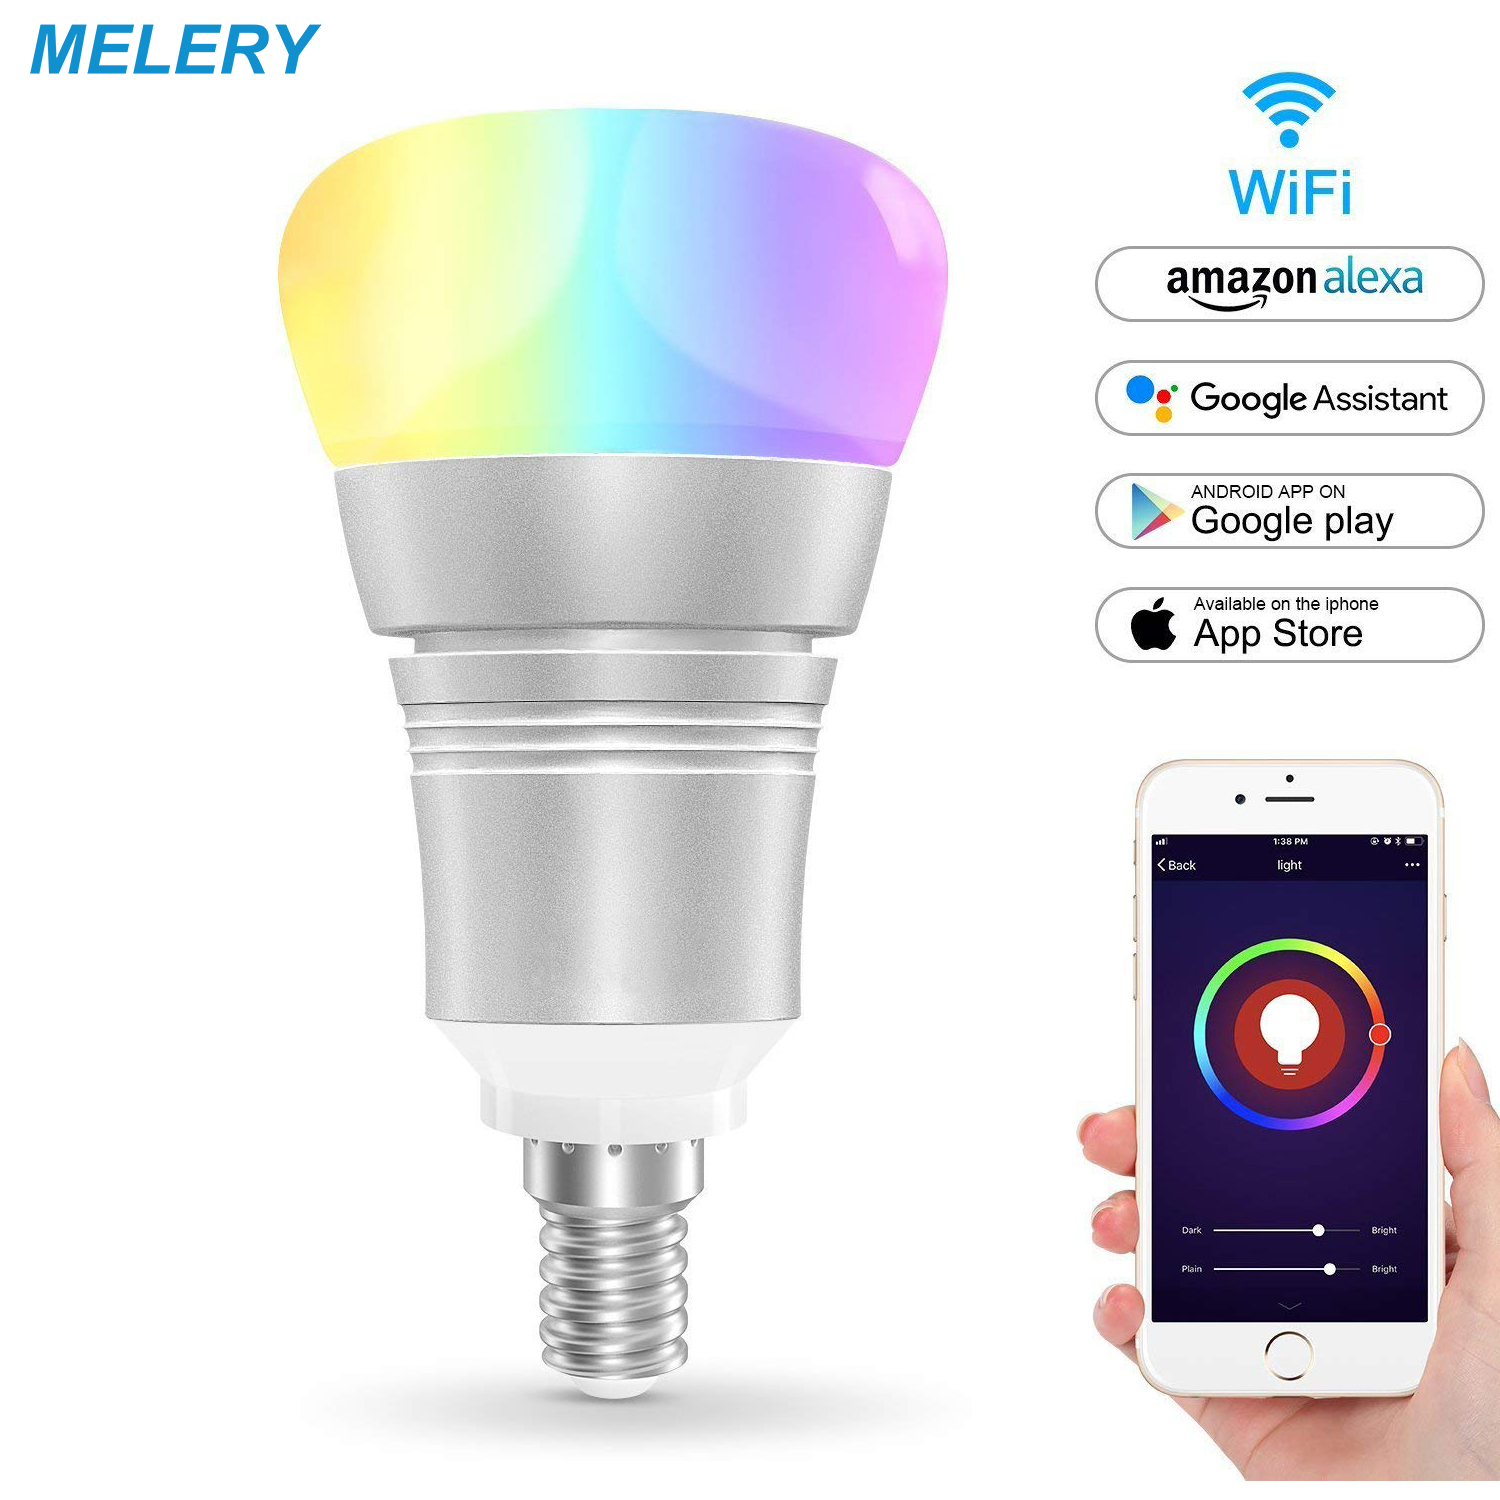 Smart Led Lamp Wifi Light Bulb 7W E14 Dimmable Remote Control Multicolor LED Colorful Mood Light for Alexa Google Home IFFT